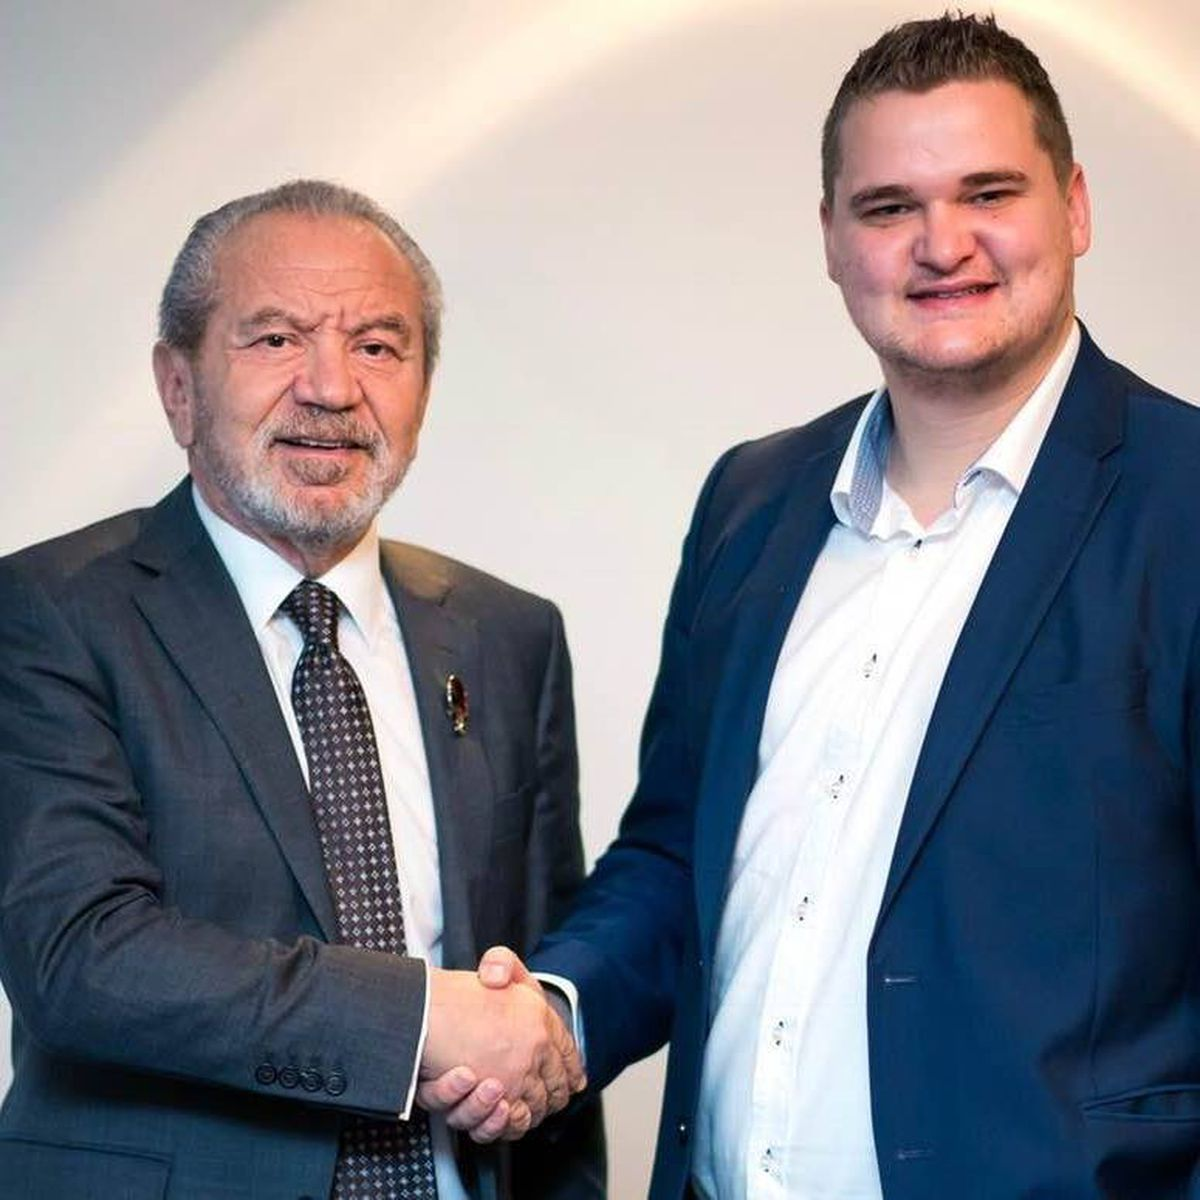 Samuel with Lord Alan Sugar